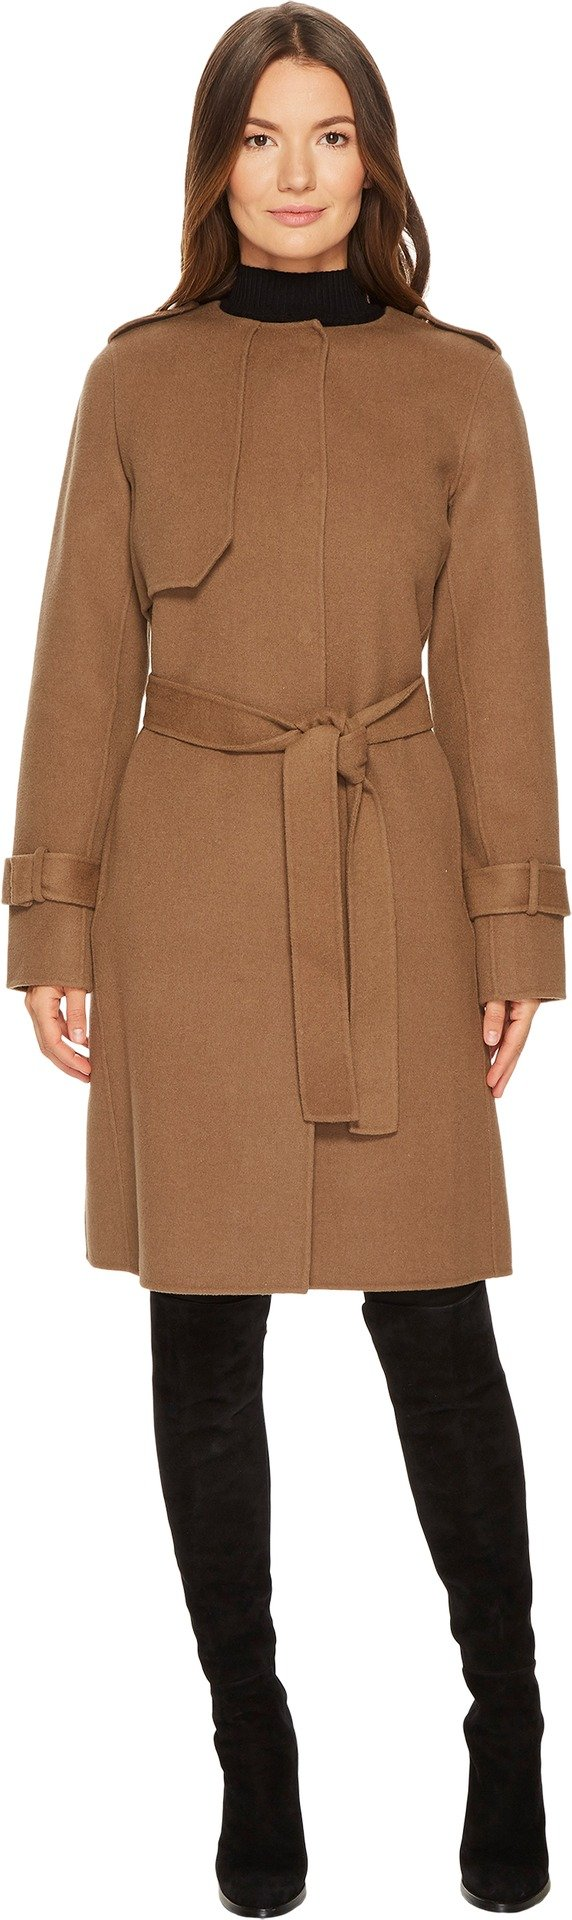 Diane von Furstenberg Women's Liane Double Face Wool Tie Waist Coat British Khaki Small